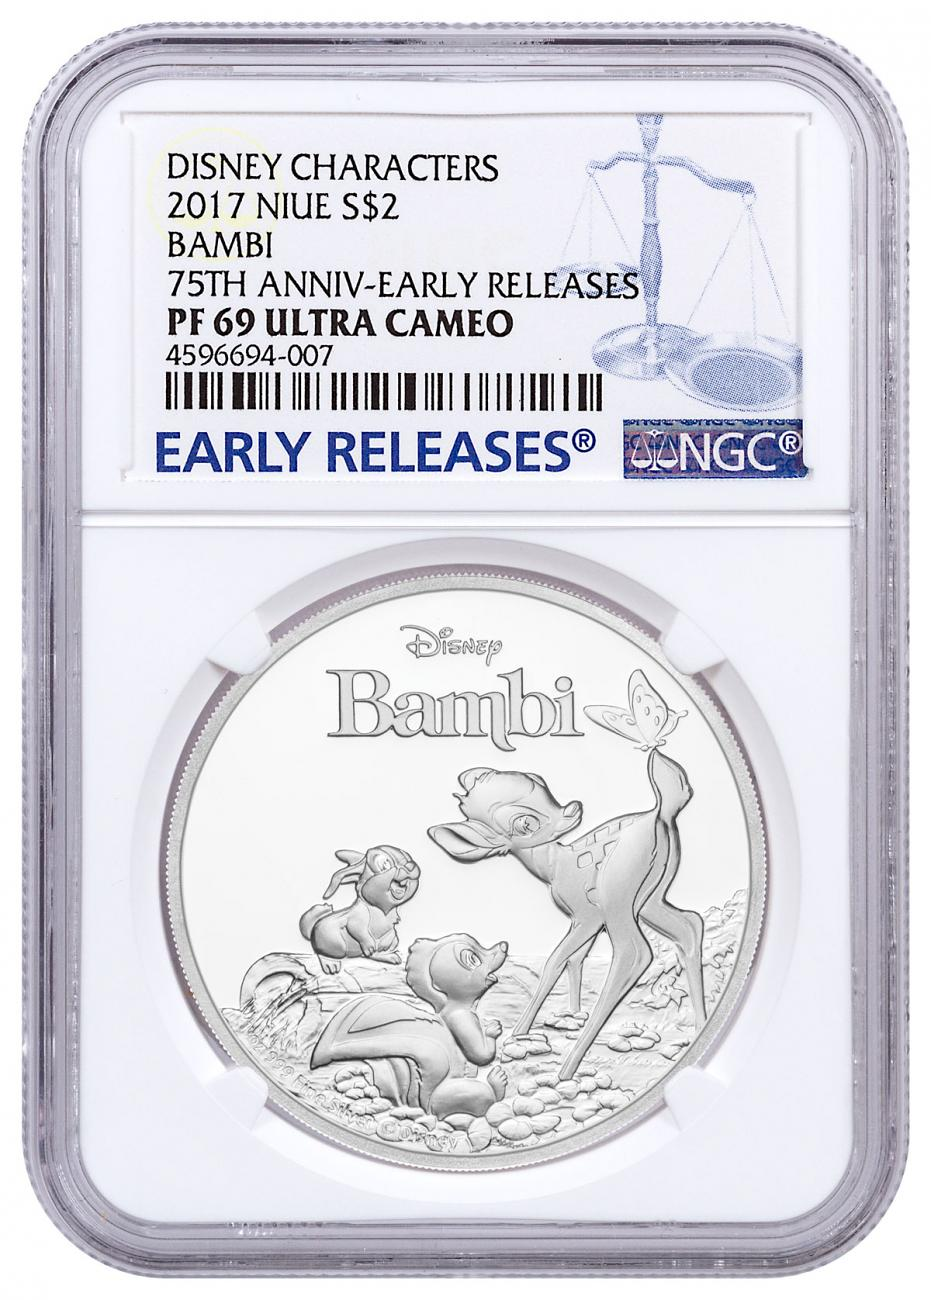 2017 Niue Iconic Disney - Bambi 75th Anniversary 1 oz Silver Proof $2 Coin NGC PF69 UC ER